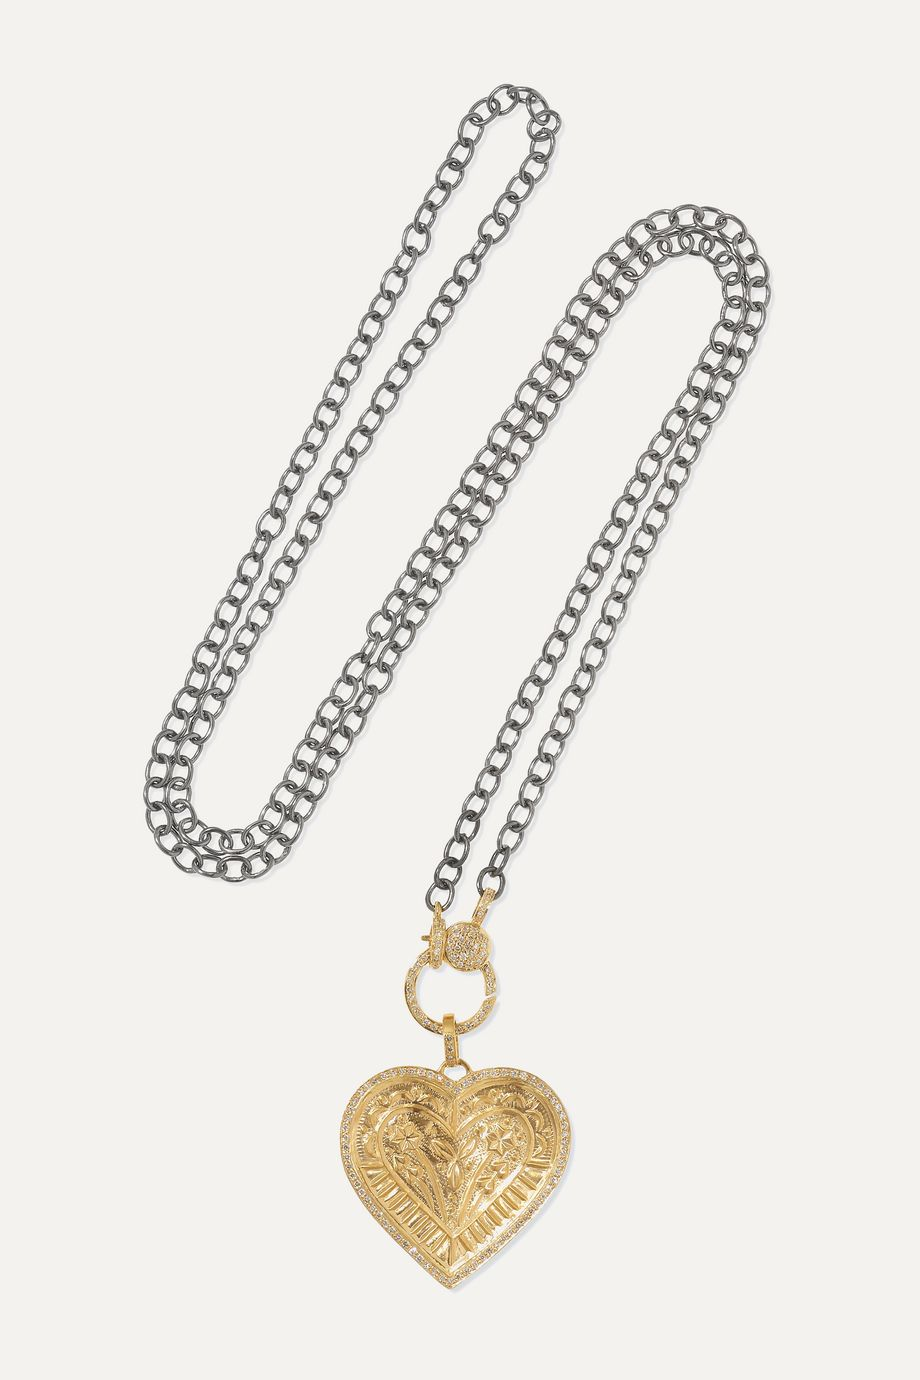 Ileana Makri Promise Heart 18-karat gold and oxidized sterling silver diamond necklace